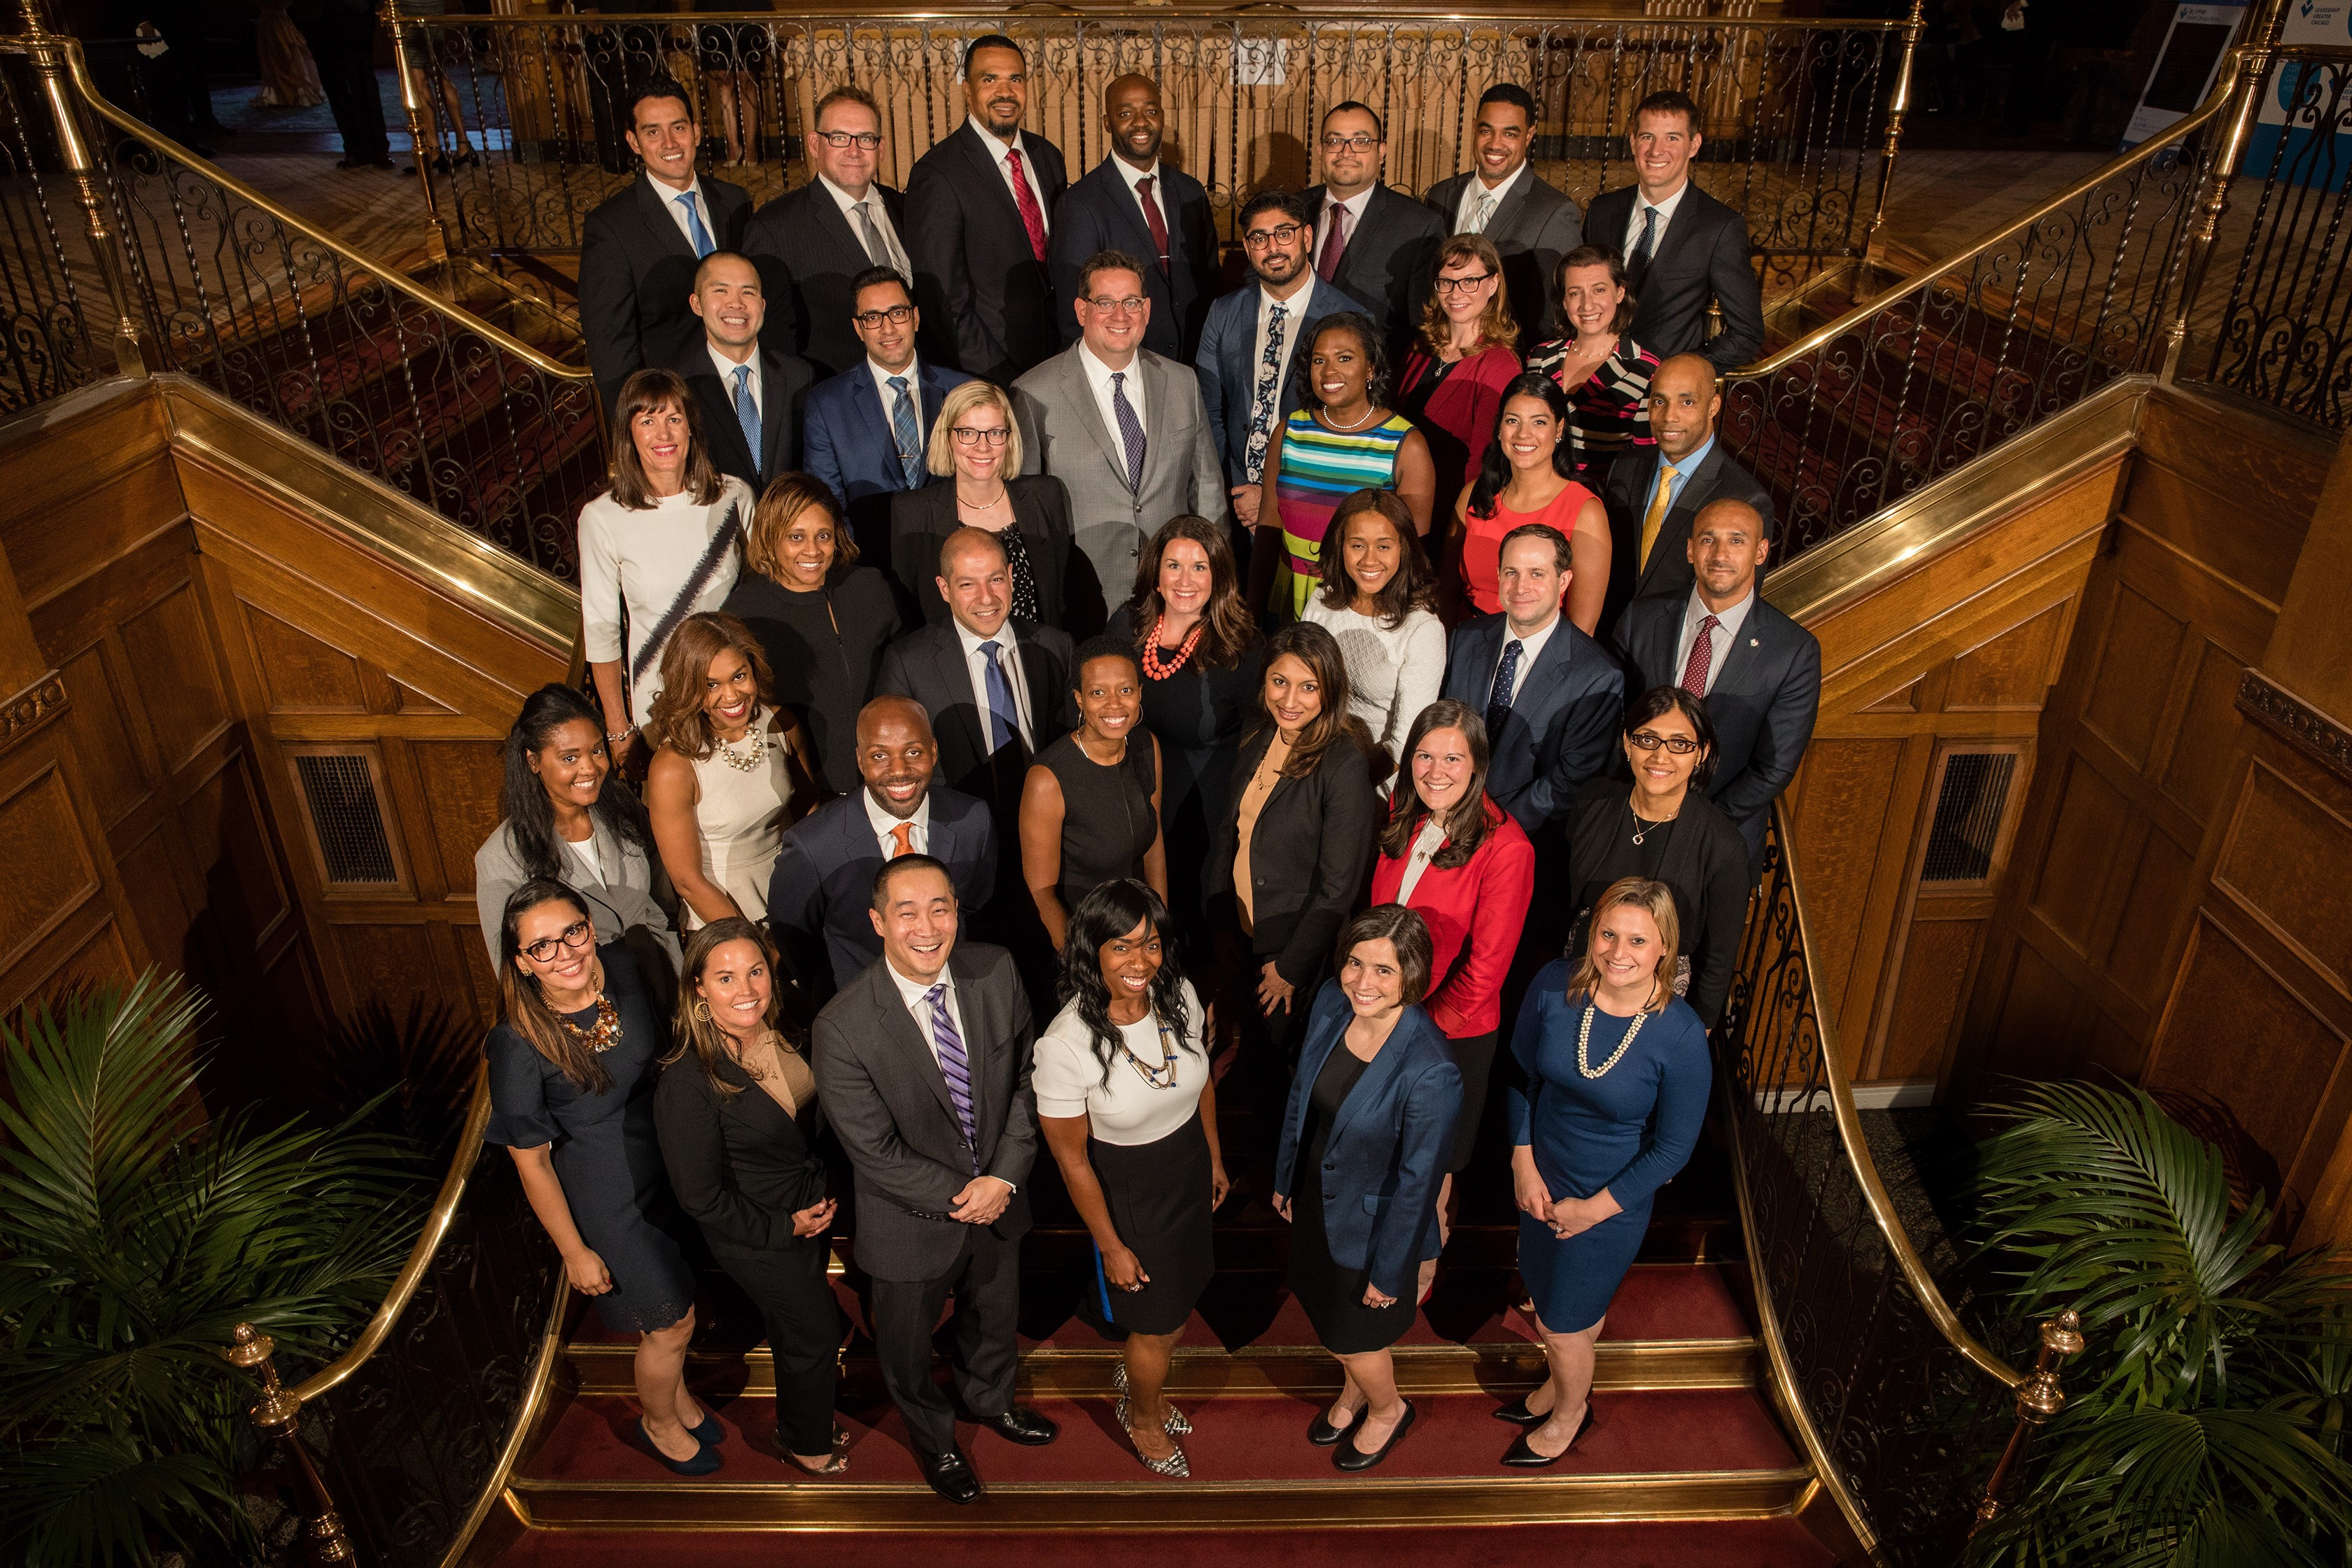 Group photo of the Class of 2018 Fellows